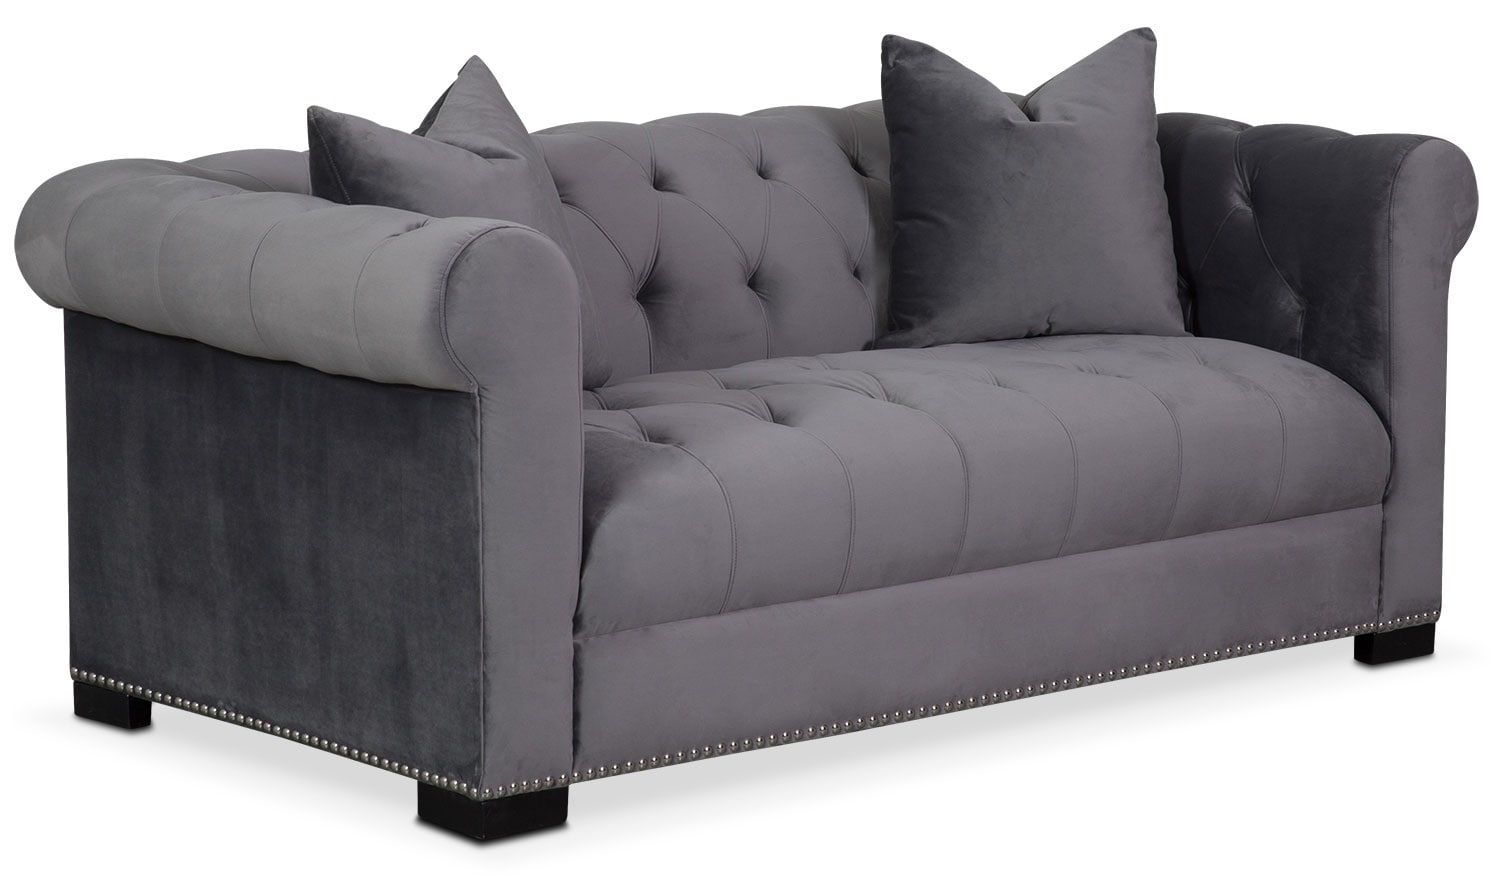 American signature furniture sofa beds for American signature furniture commercial chaise